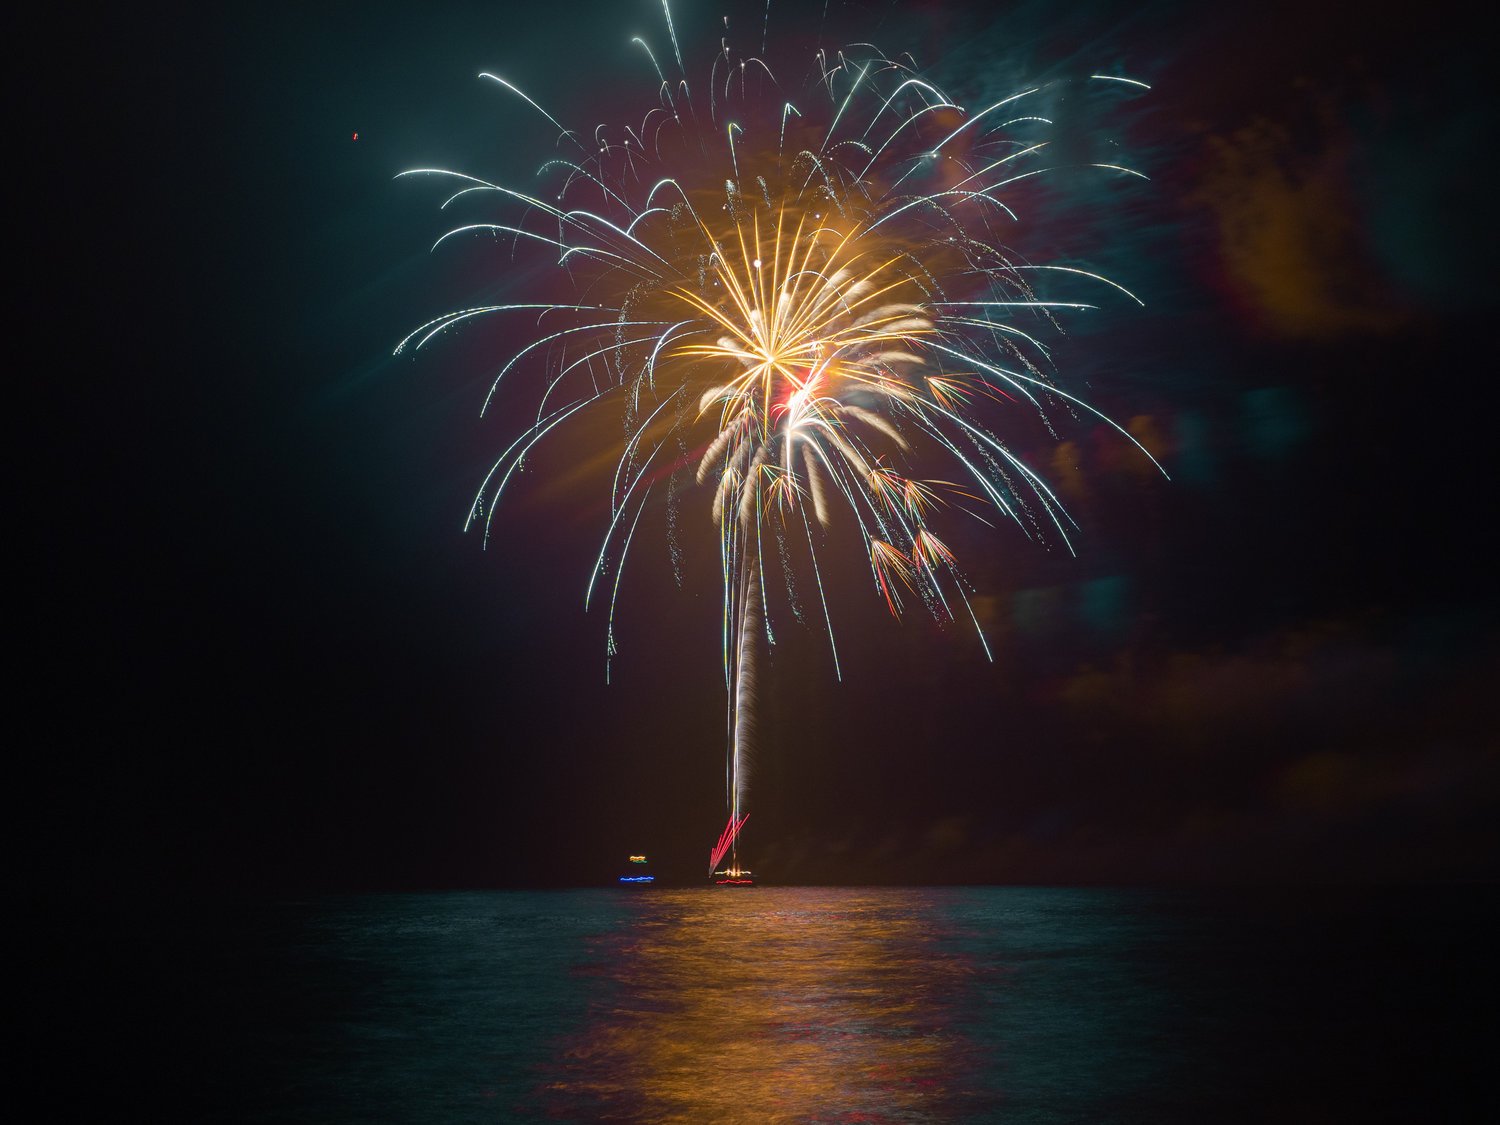 Long Beach held its annual Fireworks Extravaganza on July 5.